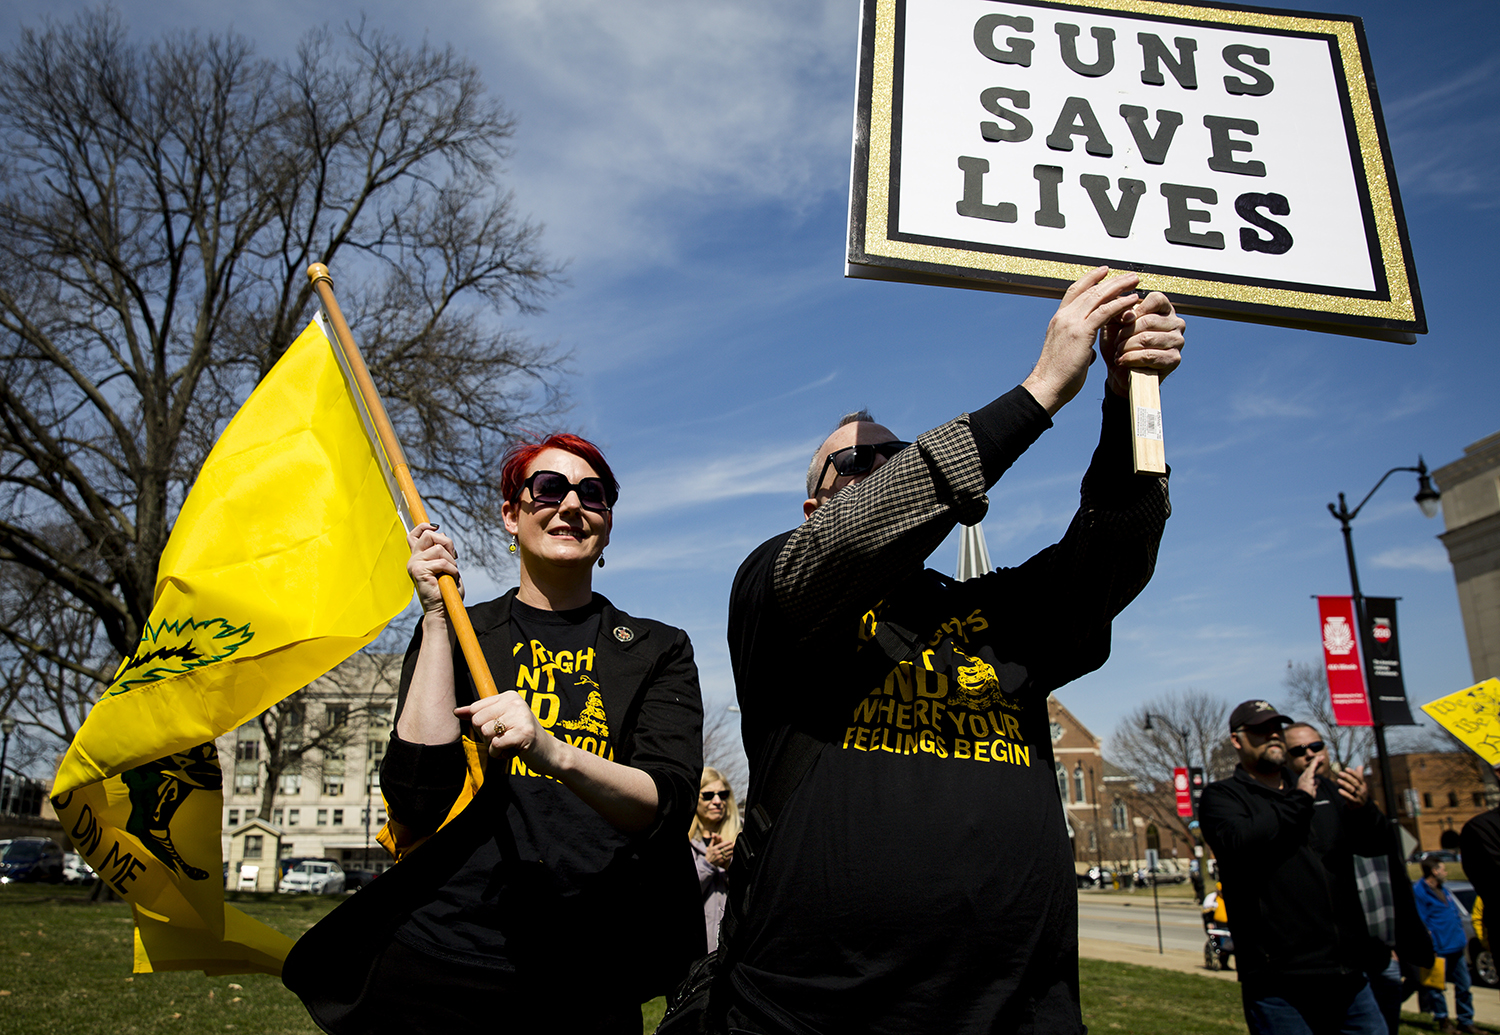 Cherie Faulkner and Karl Dettmer from Naperville, listen to speakers on the steps of the Capitol during the Illinois State Rifle Association's annual gun owner's lobby day (IGOLD)  Wednesday, March 27, 2019 in Springfield, Ill. [Rich Saal/The State Journal-Register]